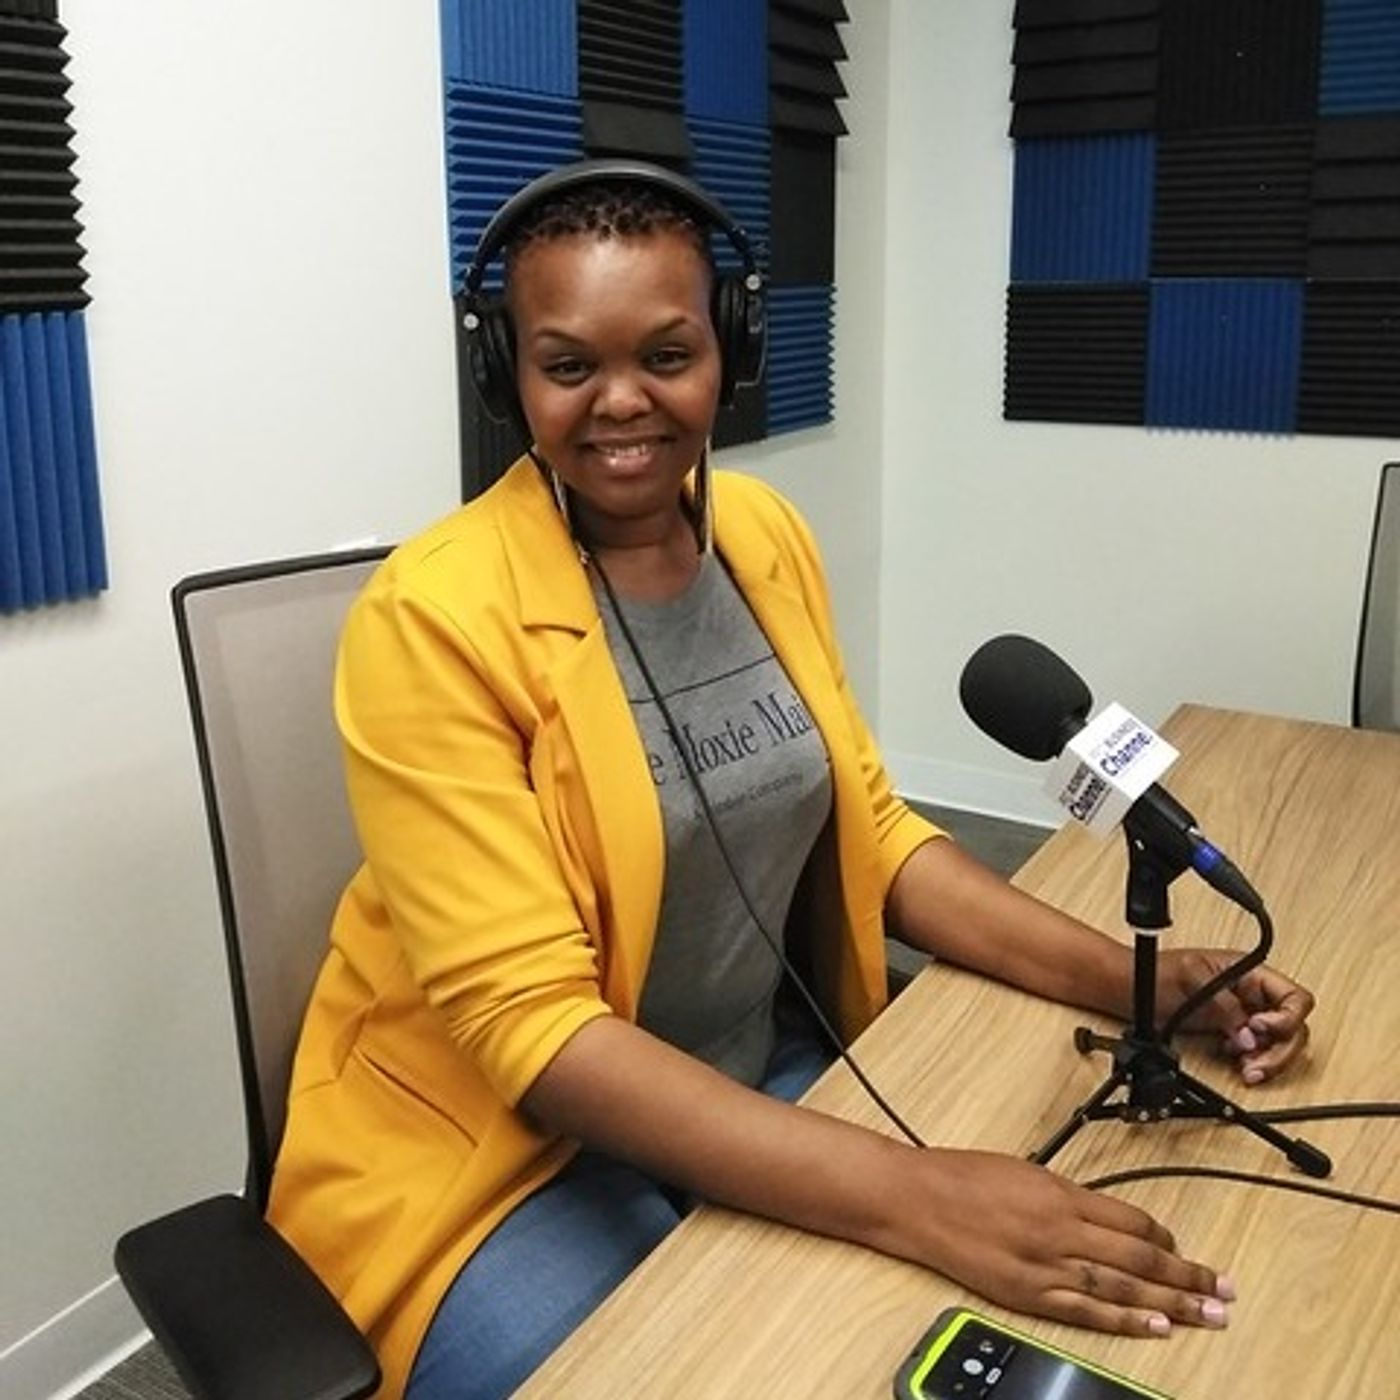 Corporate America to Entrepreneurship Founder of The Moxie Maids on Georgia Podcast